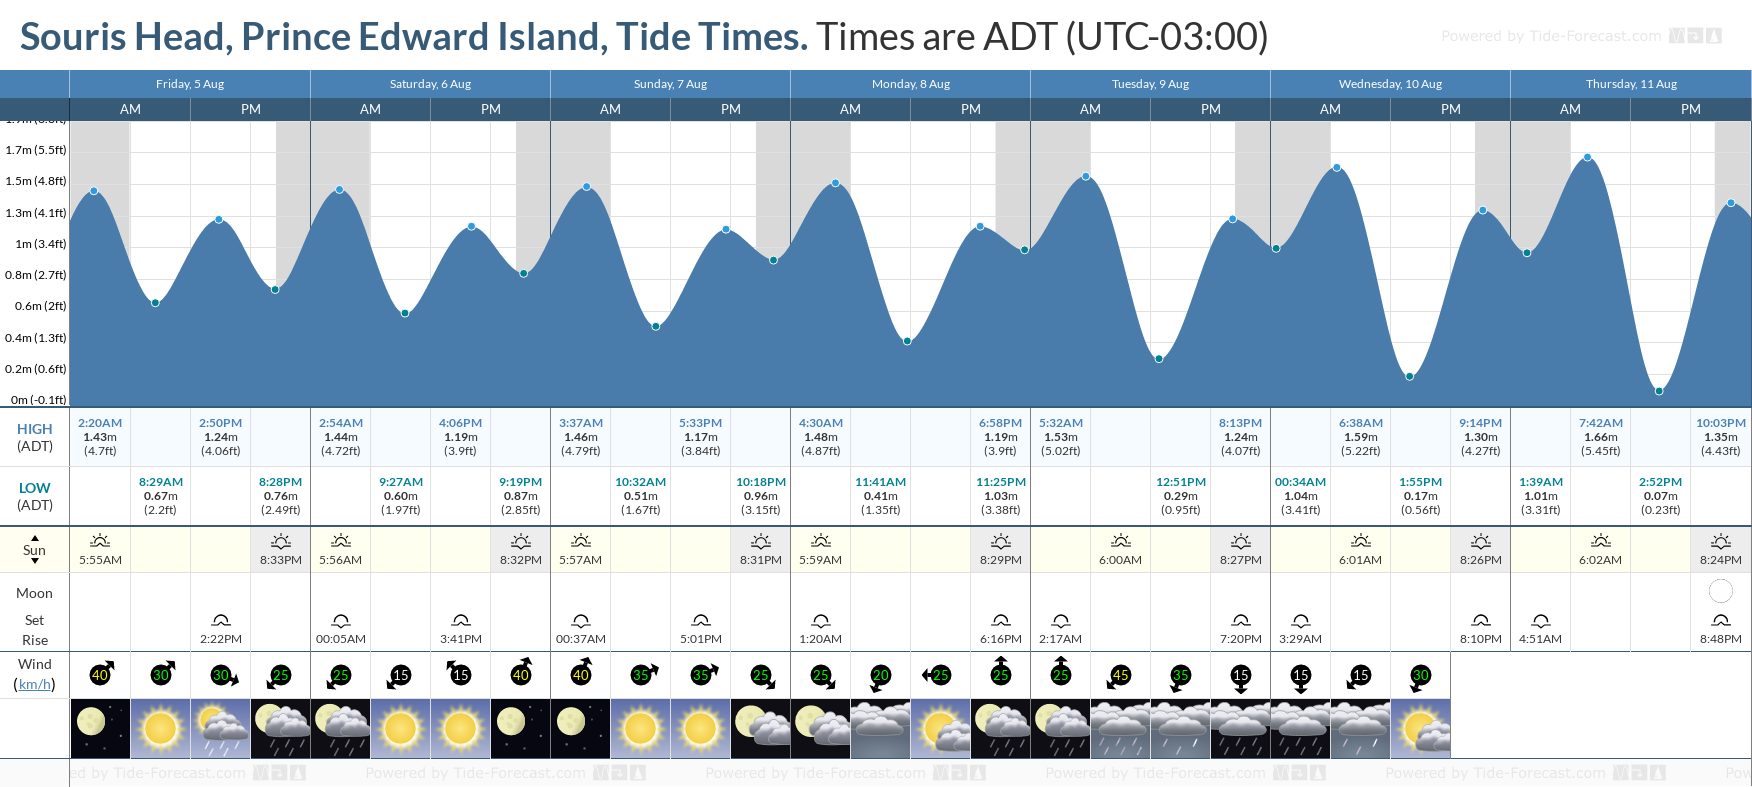 Souris Head, Prince Edward Island Tide Chart including high and low tide tide times for the next 7 days